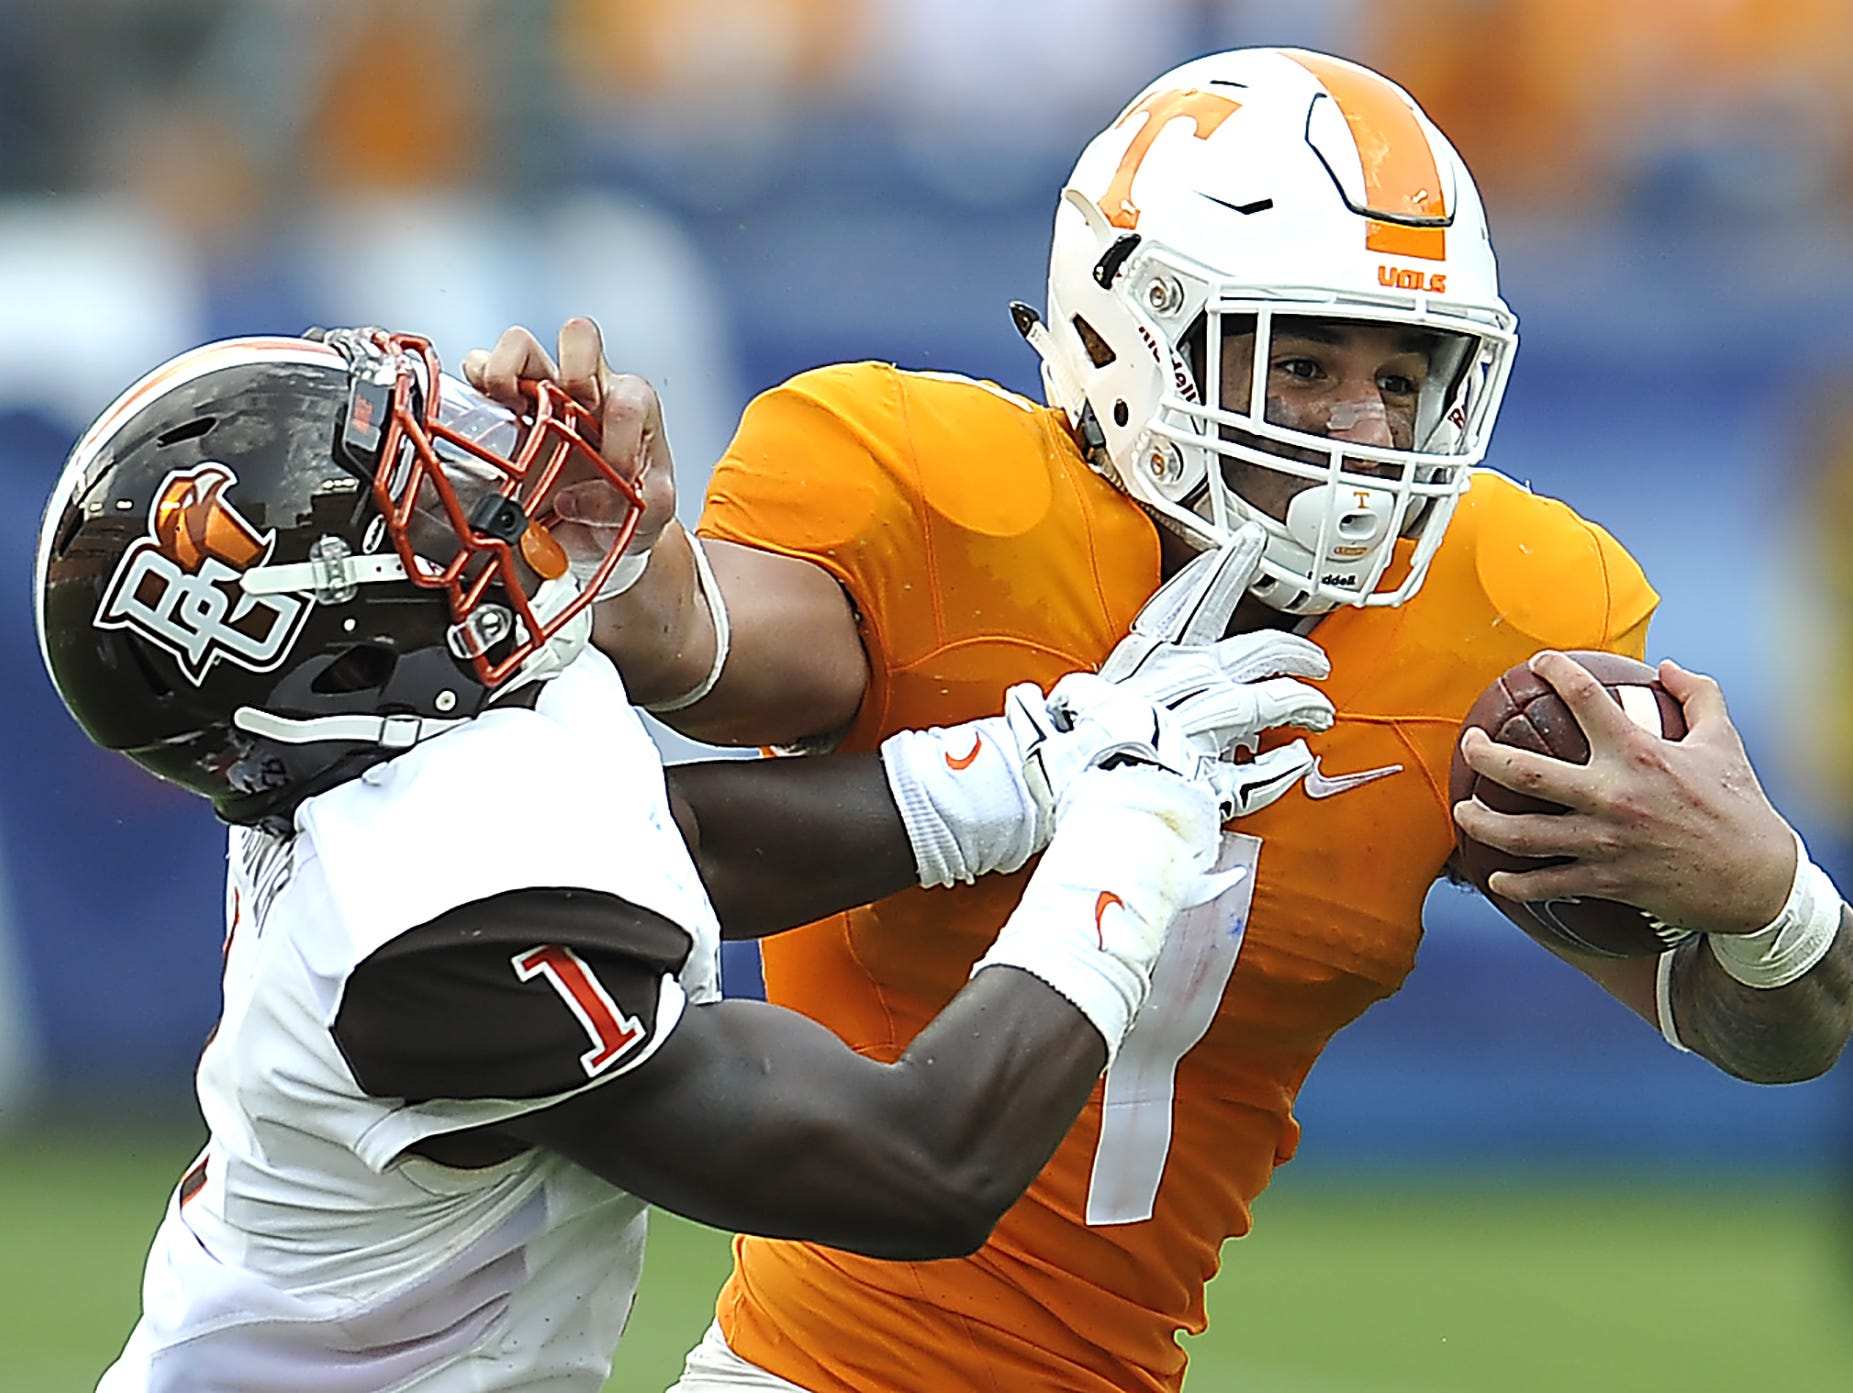 Tennessee running back Jalen Hurd (1) puts a stiffarm on Bowling Green defensive back Darrell Hunter (1) as the University of Tennessee plays Bowling Green.